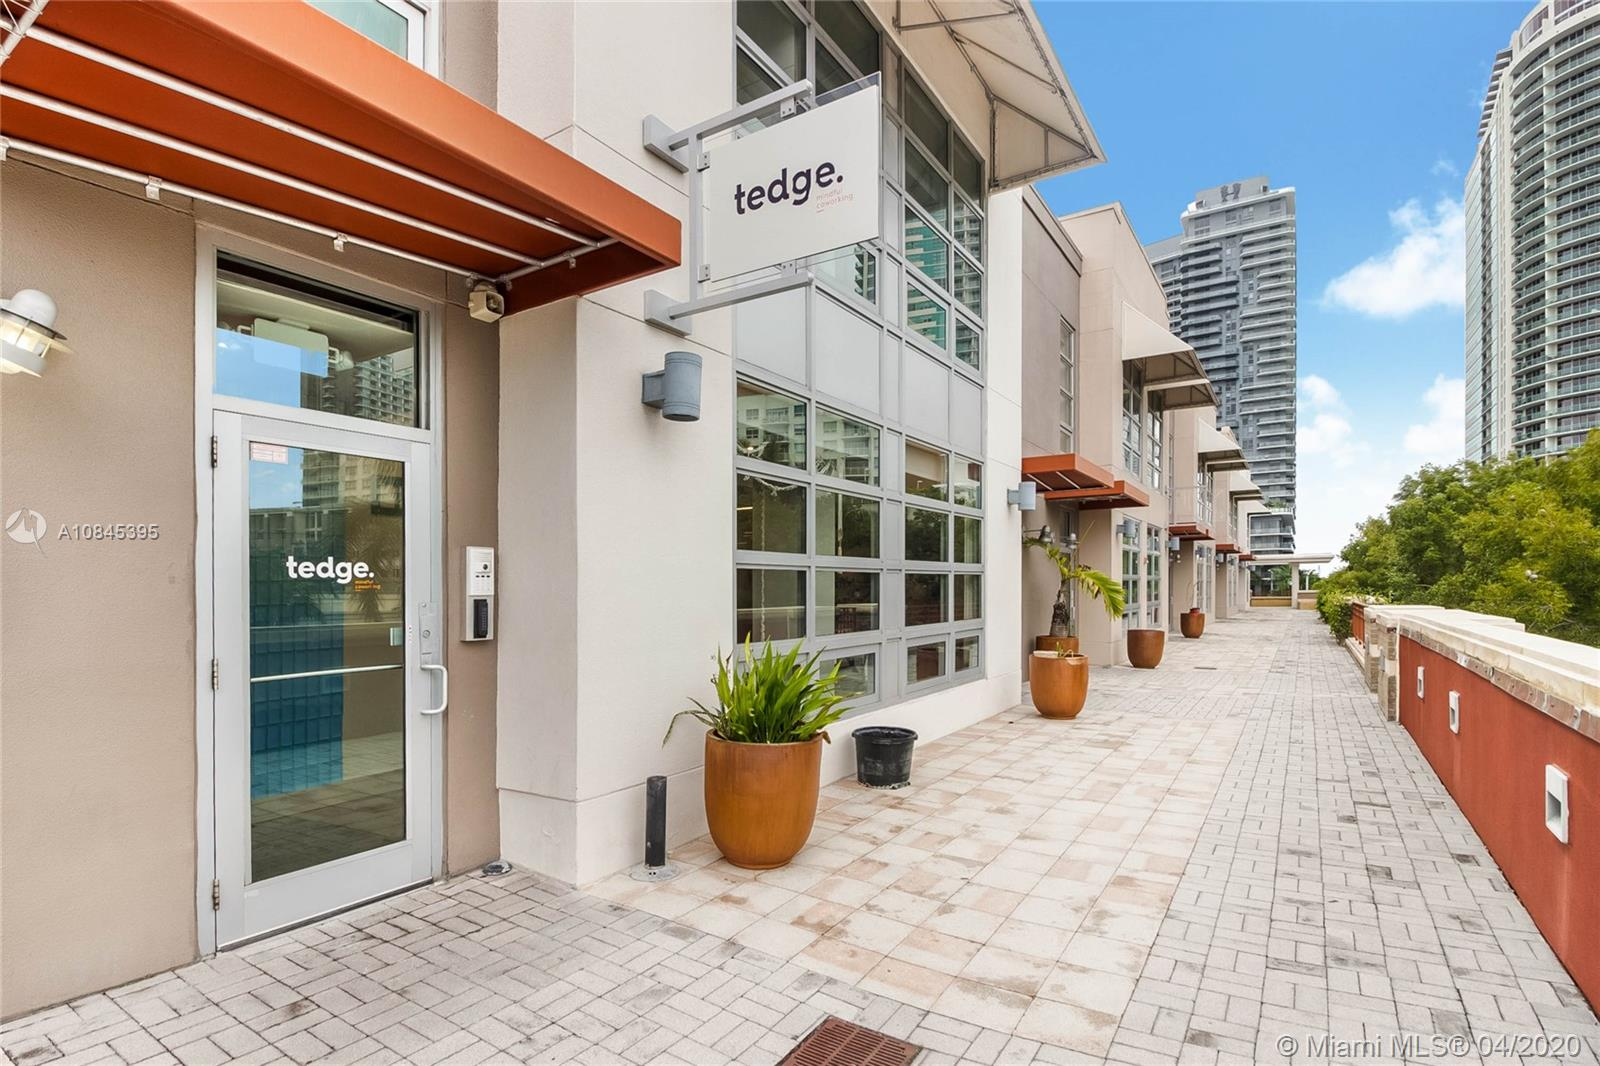 image #1 of property, 3401 N Miami Ave 230 230, Unit 230